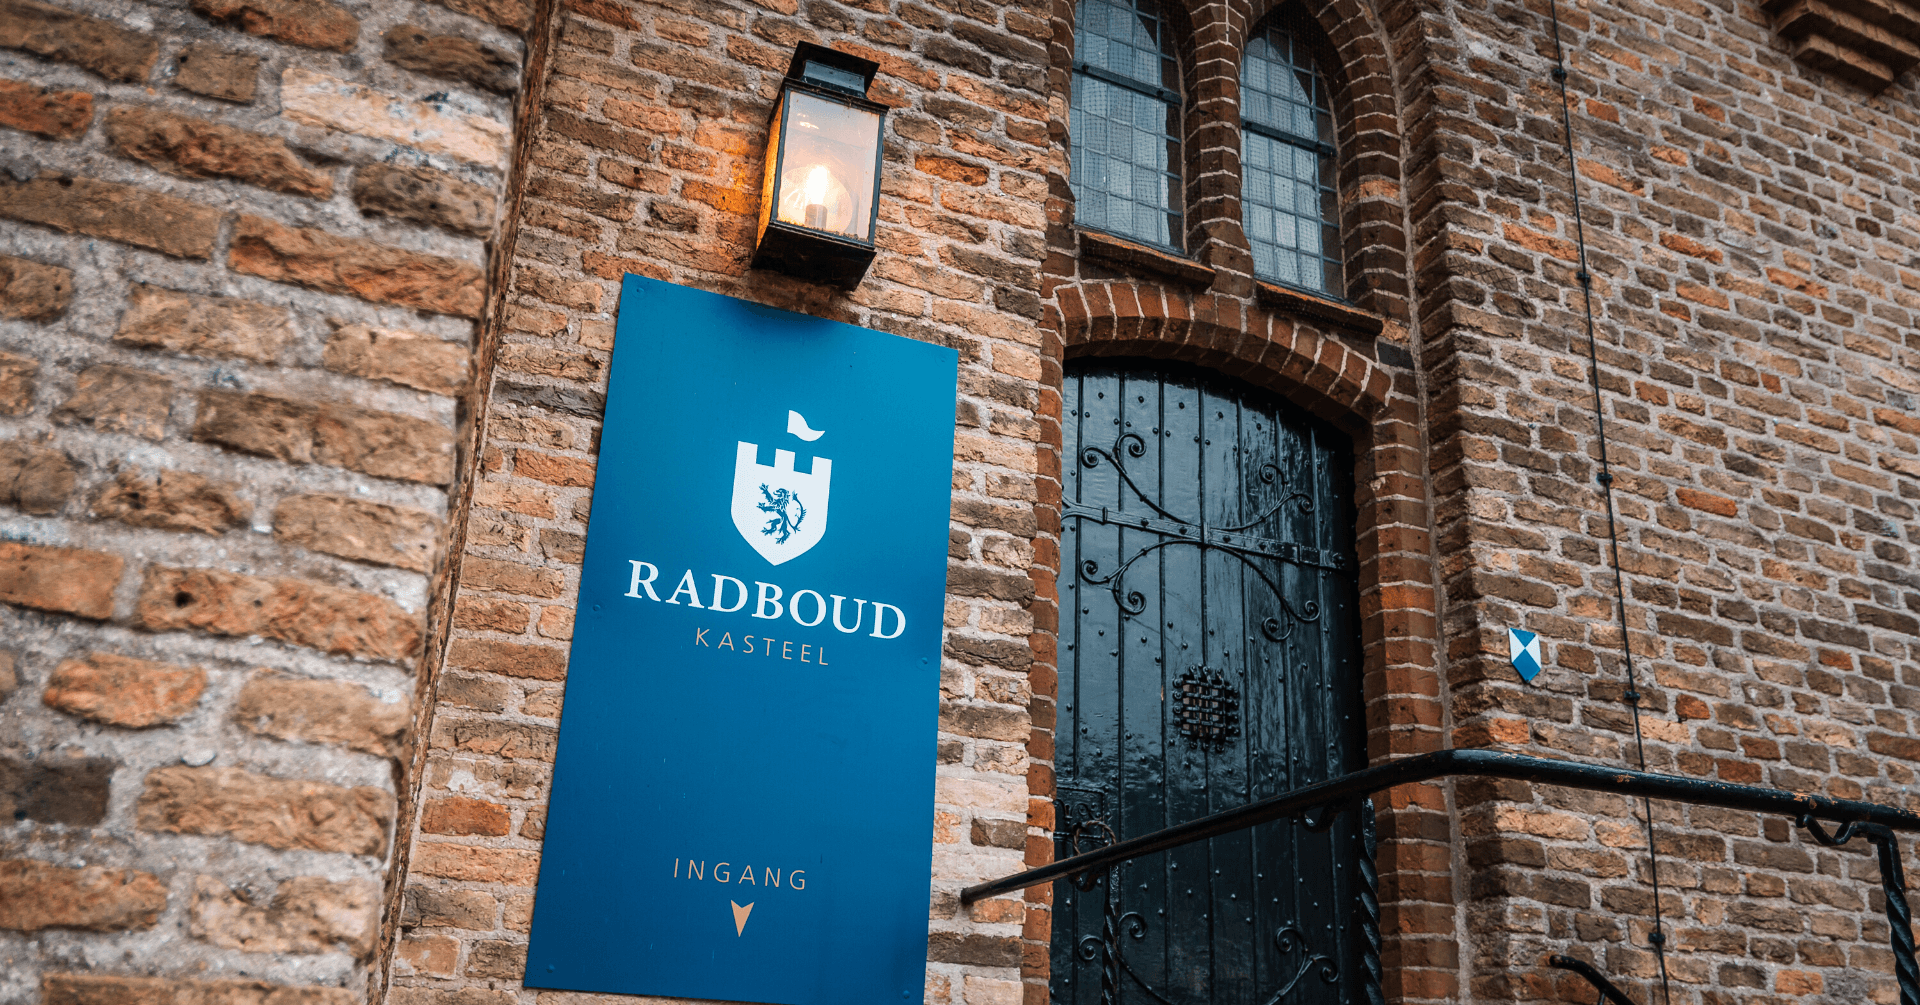 Kasteel Radboud Bordesdeur foto Pulse Visuals